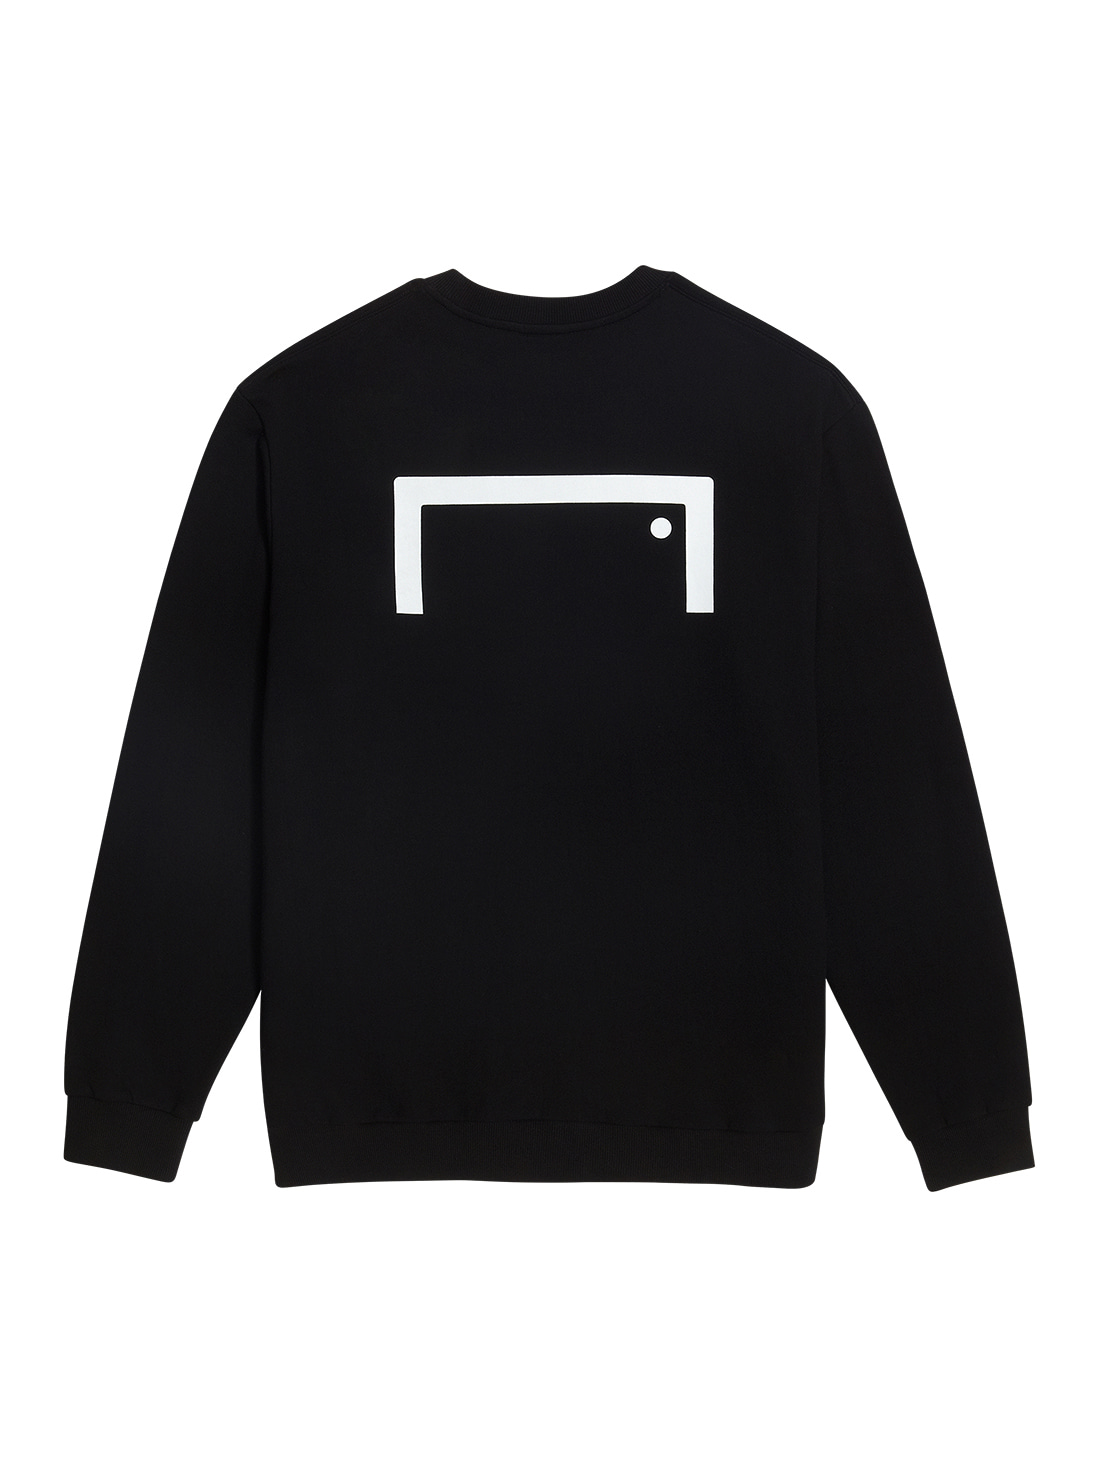 GOALSTUDIO BACK LOGO SWEATSHIRT - BLACK